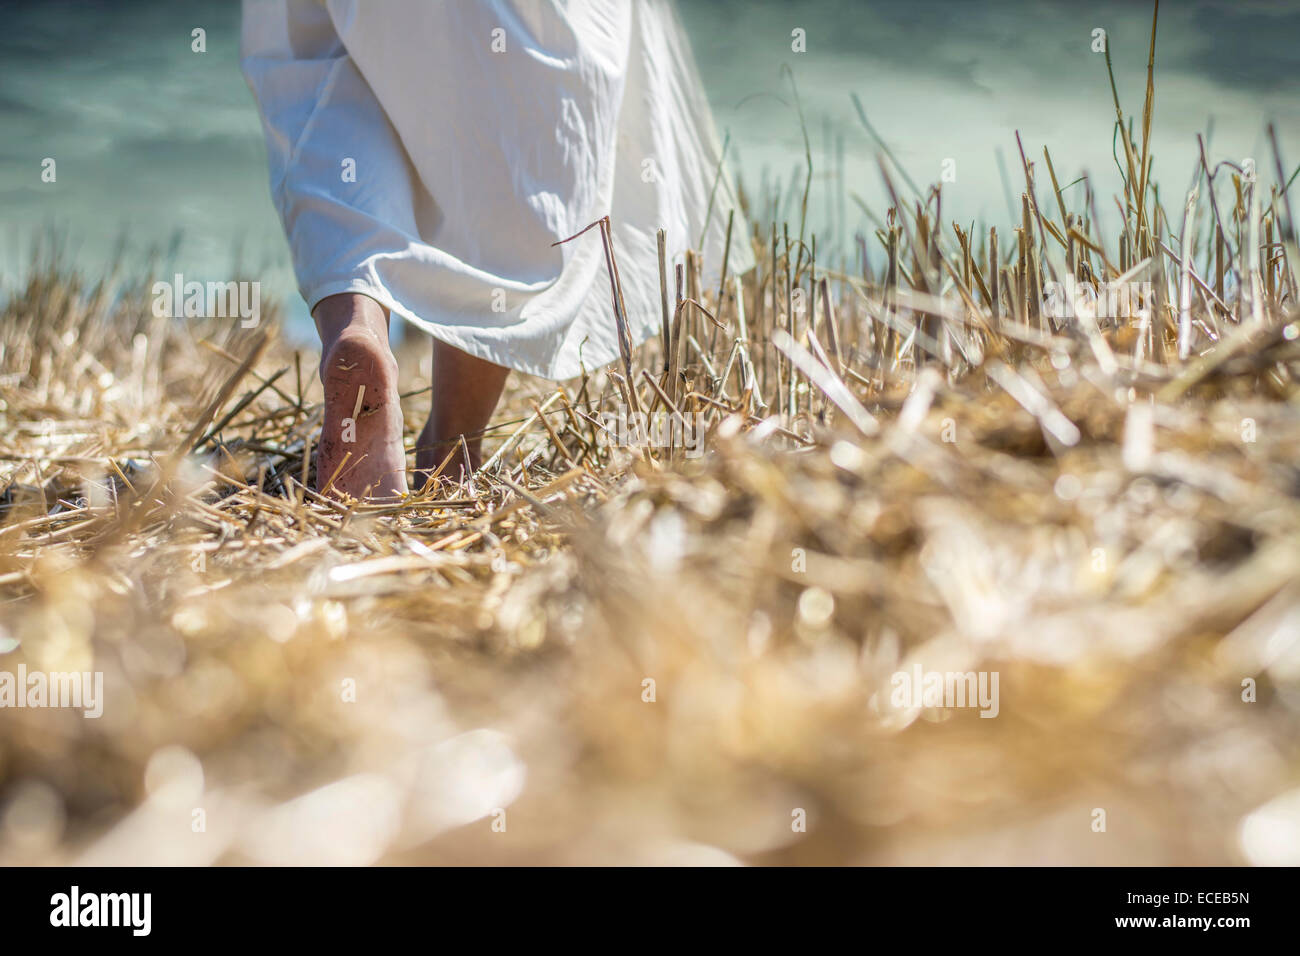 Close-up of a young woman walking barefoot through a field Stock Photo